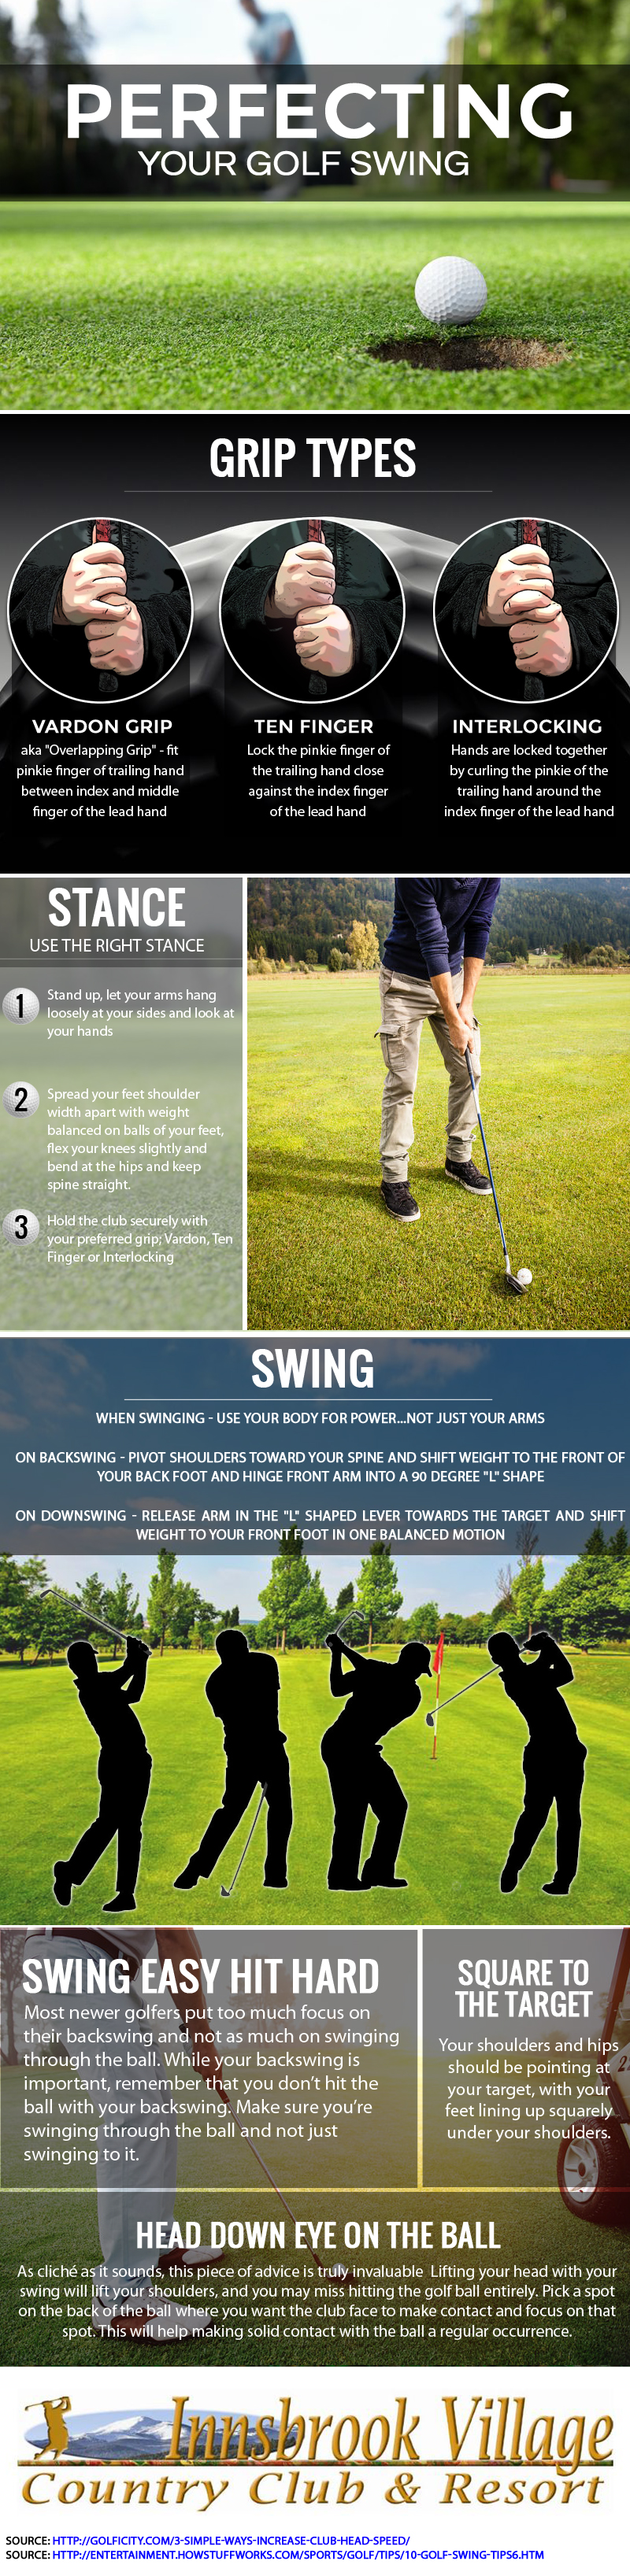 Perfecting Your Golf Swing infographic